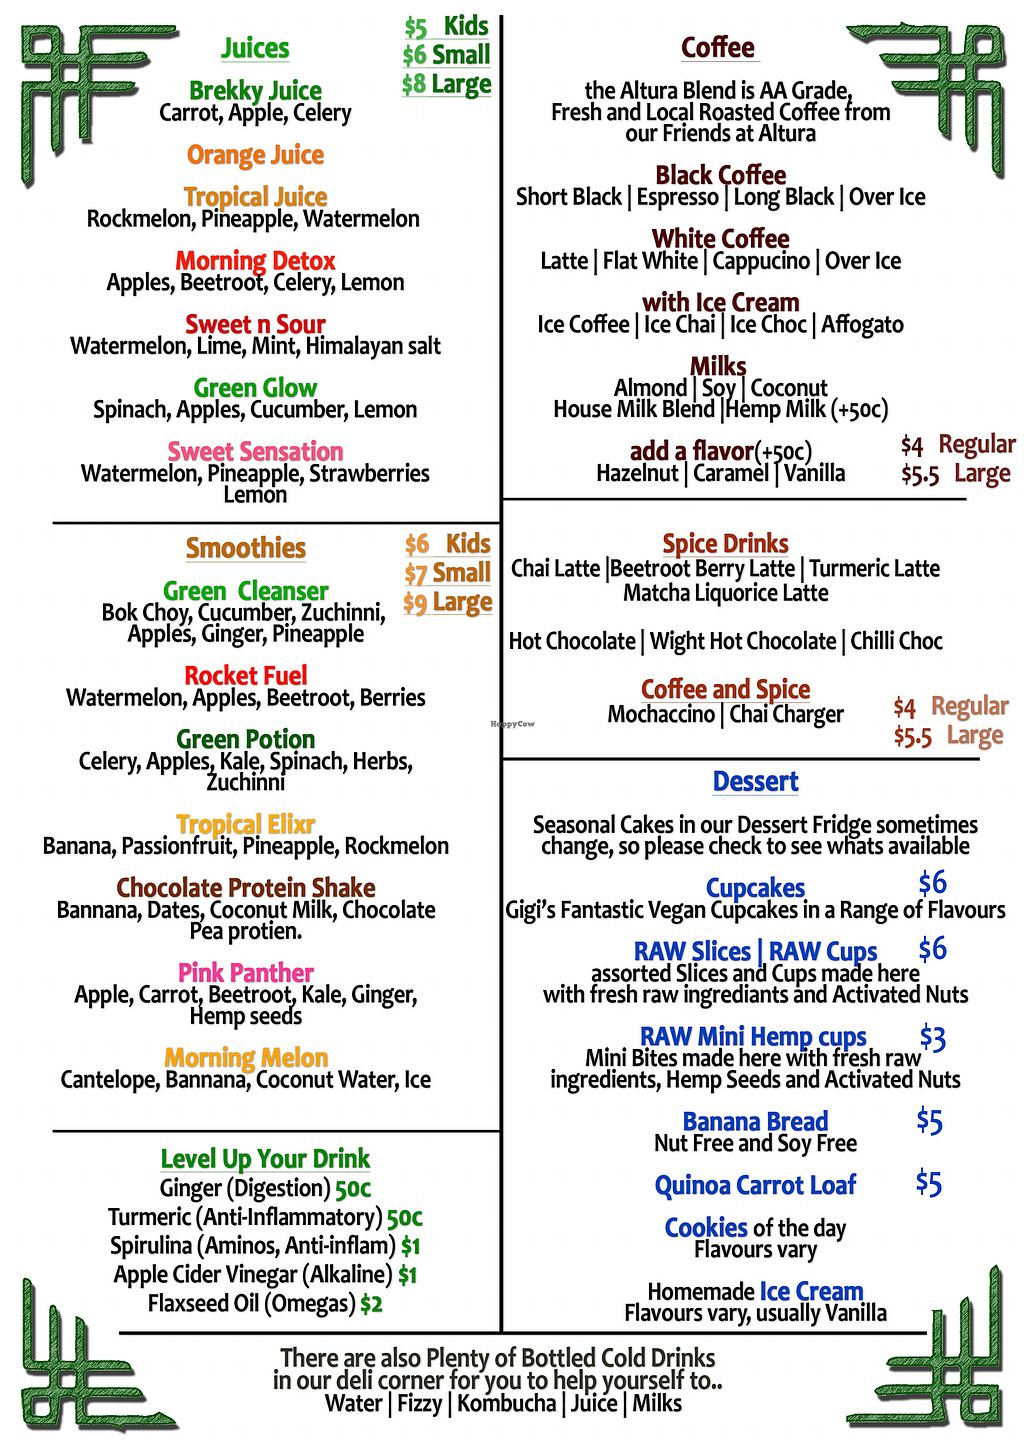 """Photo of The Lost Deli  by <a href=""""/members/profile/TheLostDeli"""">TheLostDeli</a> <br/>Drinks Menu <br/> March 3, 2018  - <a href='/contact/abuse/image/89723/366003'>Report</a>"""